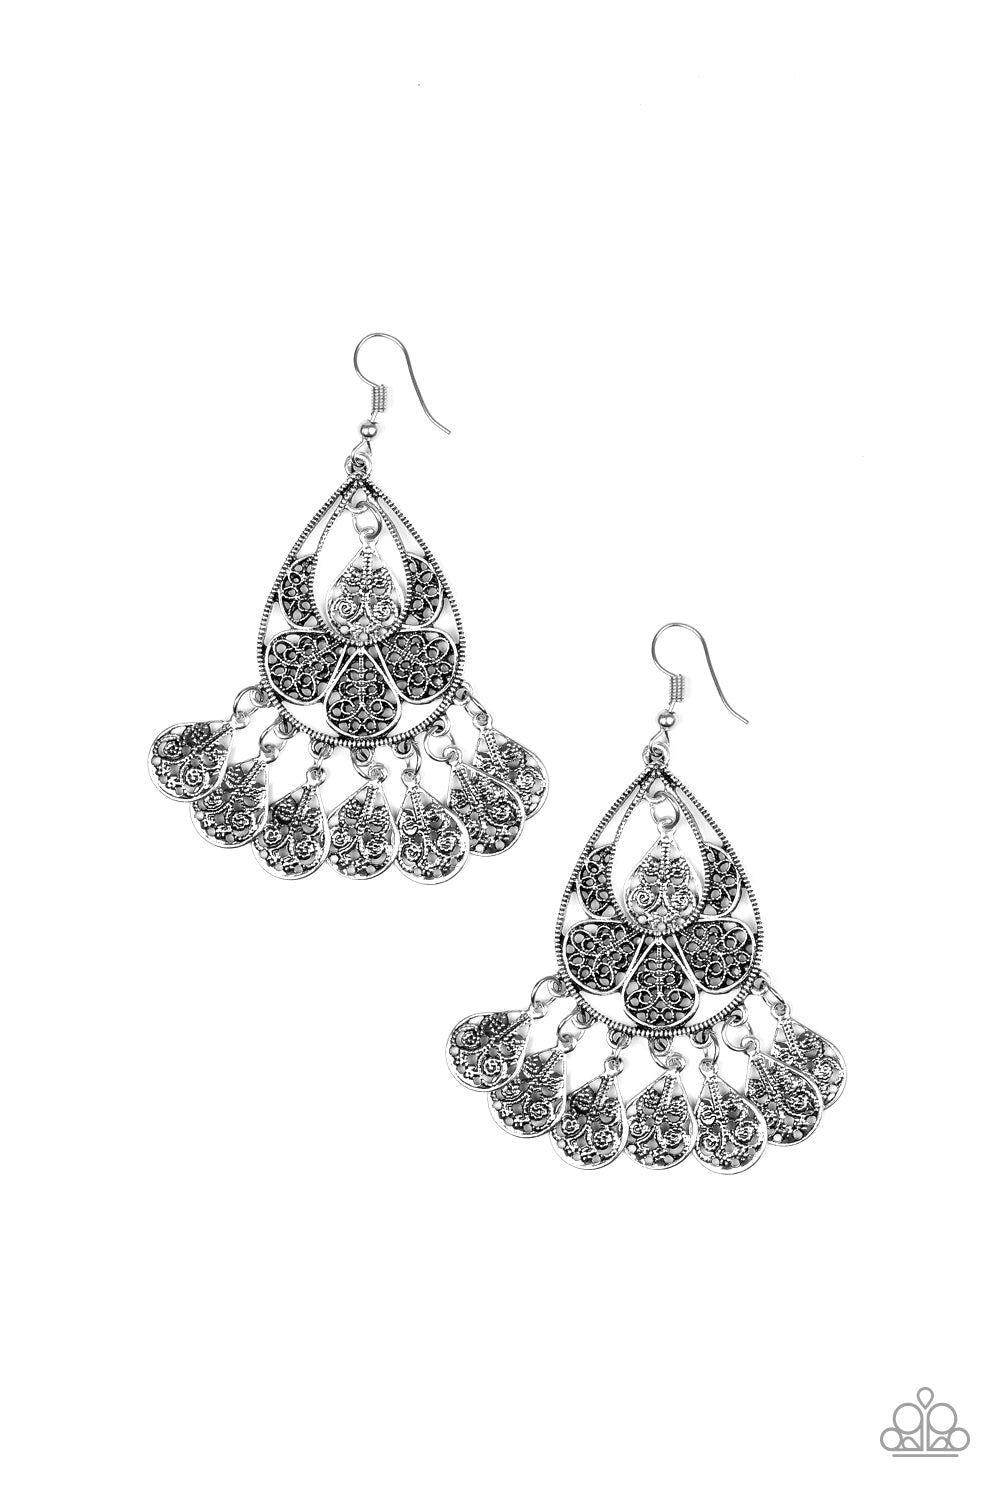 Paparazzi Accessories - Teardrop Tempo - Silver Earrings - JMJ Jewelry Collection